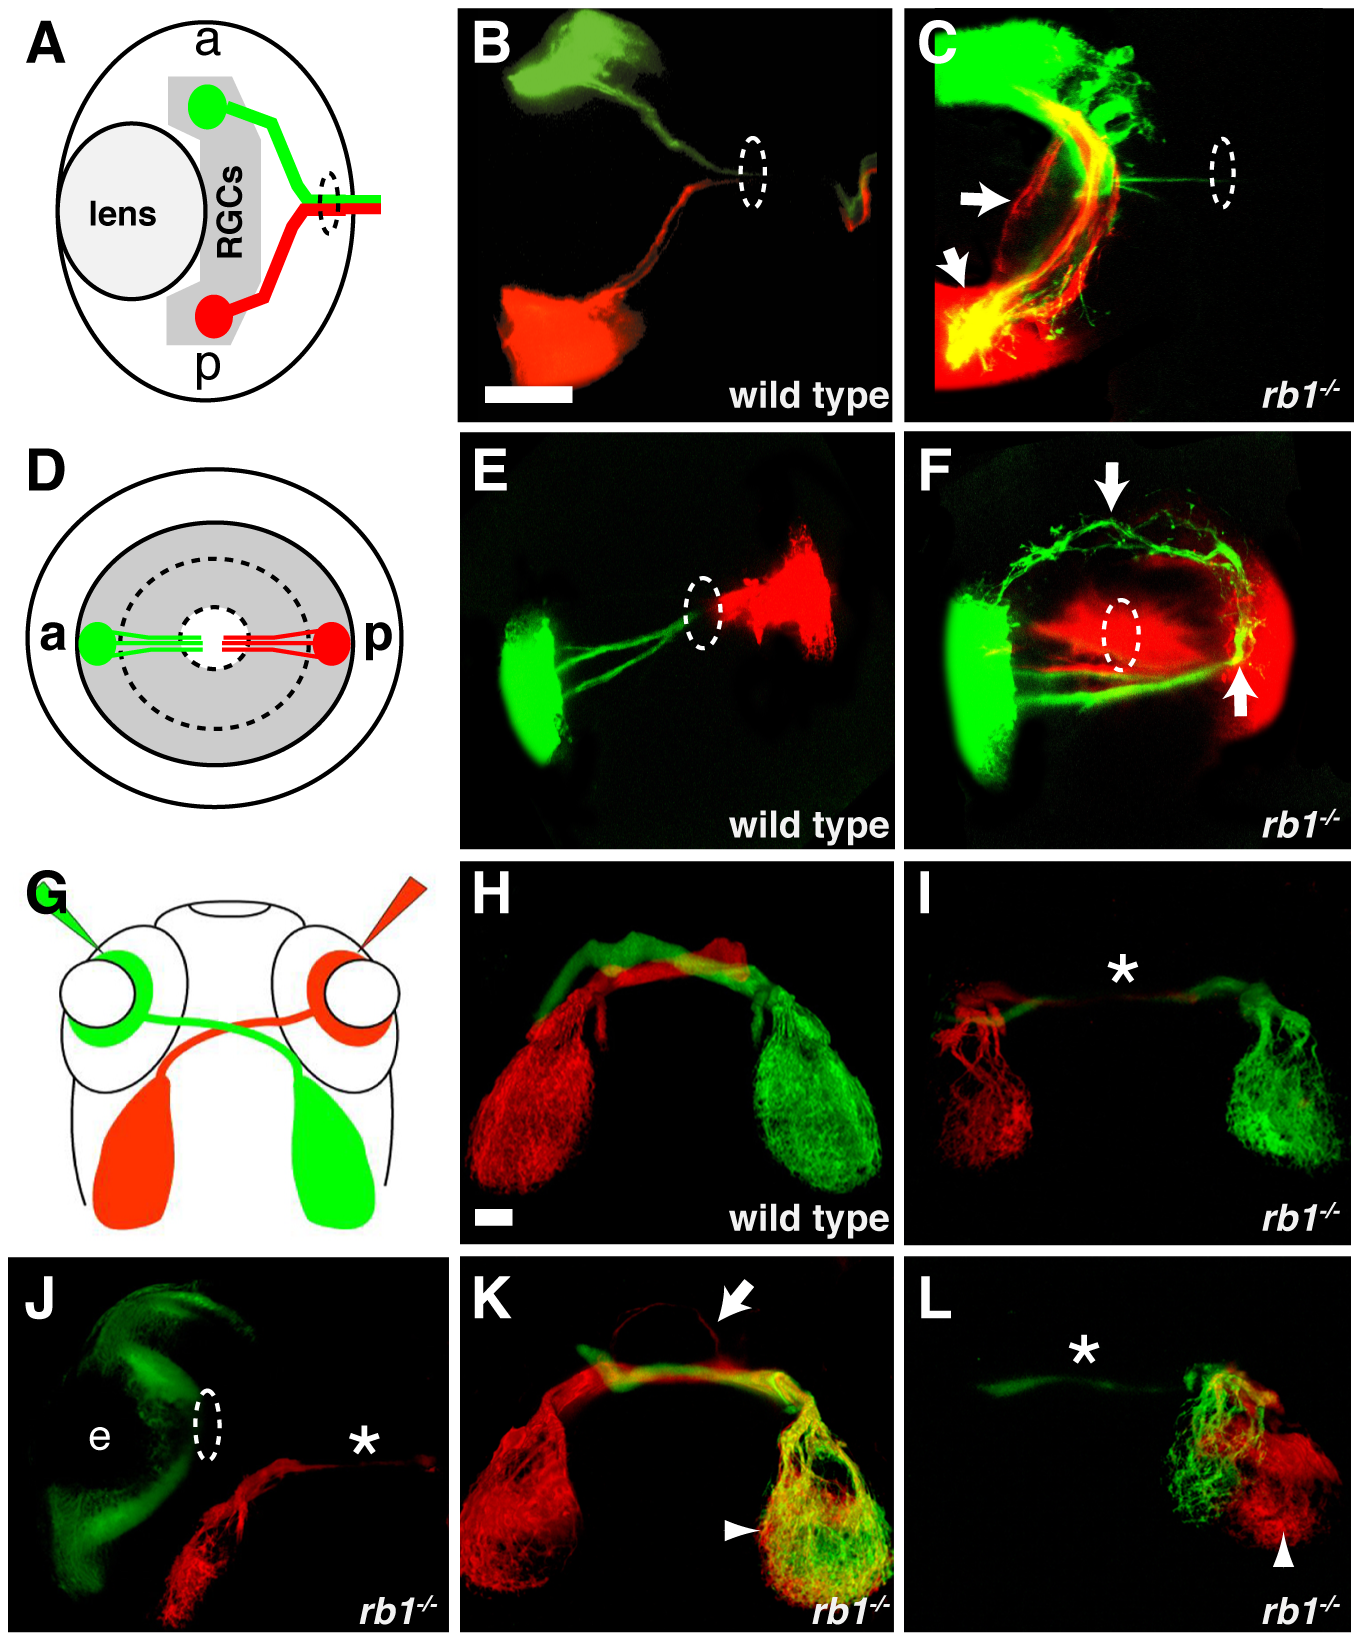 Intraretinal and midline RGC axon pathfinding errors in <i>rb1<sup>te226a</sup></i> mutants.